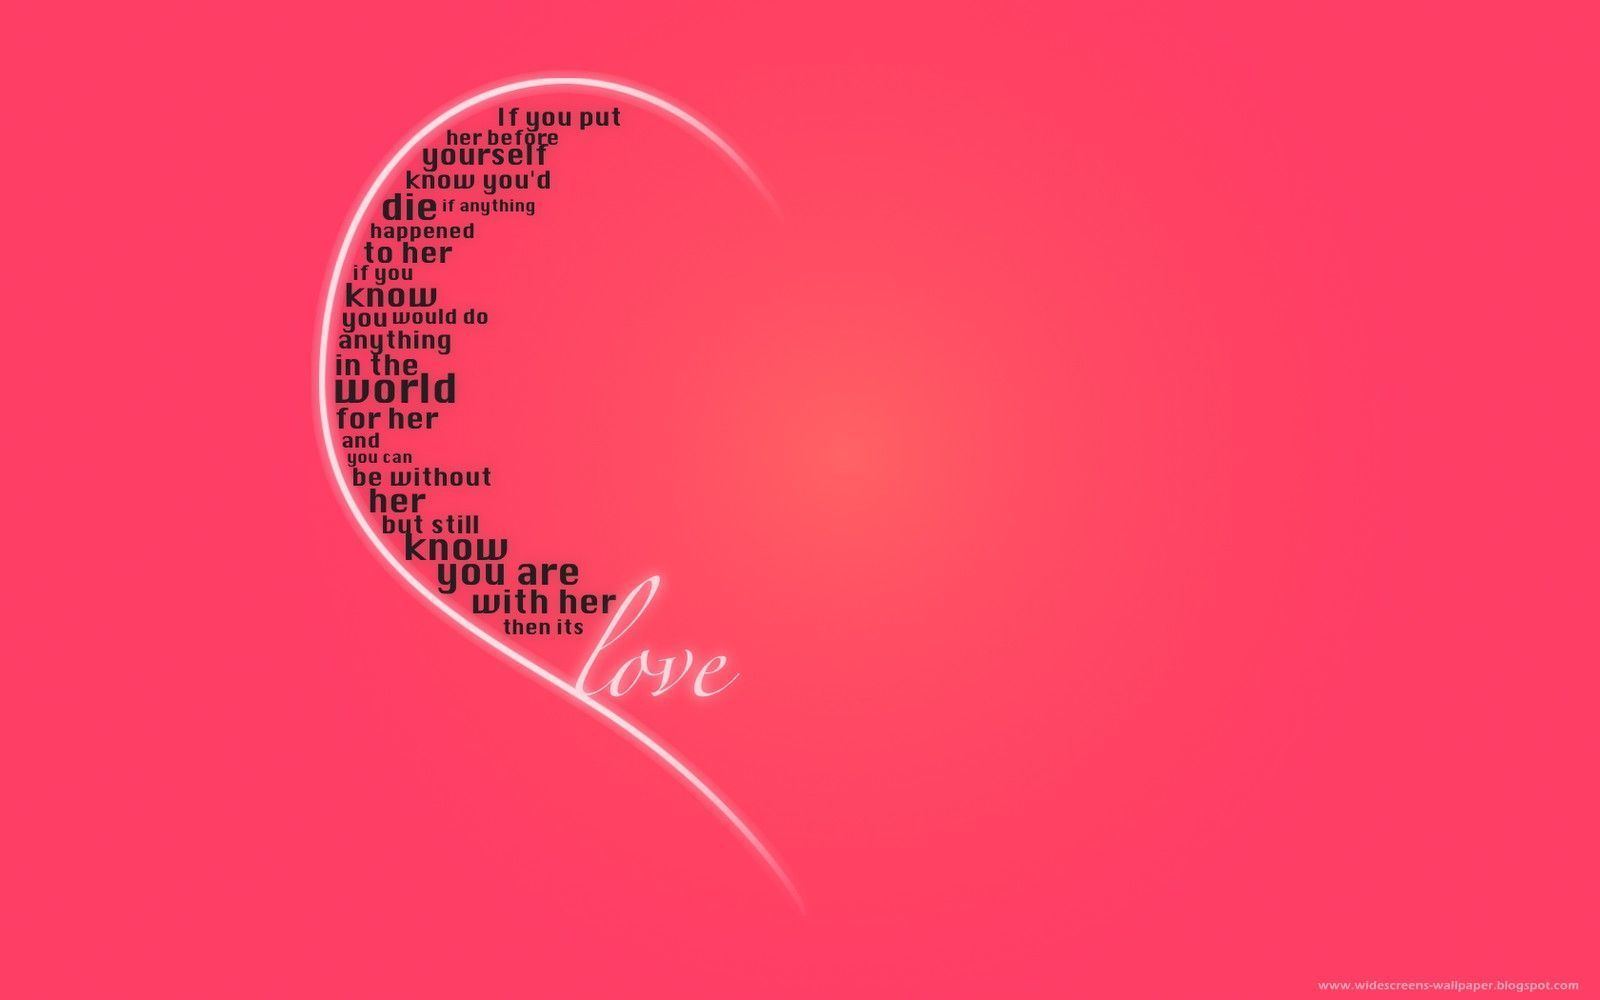 Download Beautiful Love Quotes Background Wallpaper Full Hd Love Quotes Wallpaper Cute Love Quotes Cute Girly Quotes